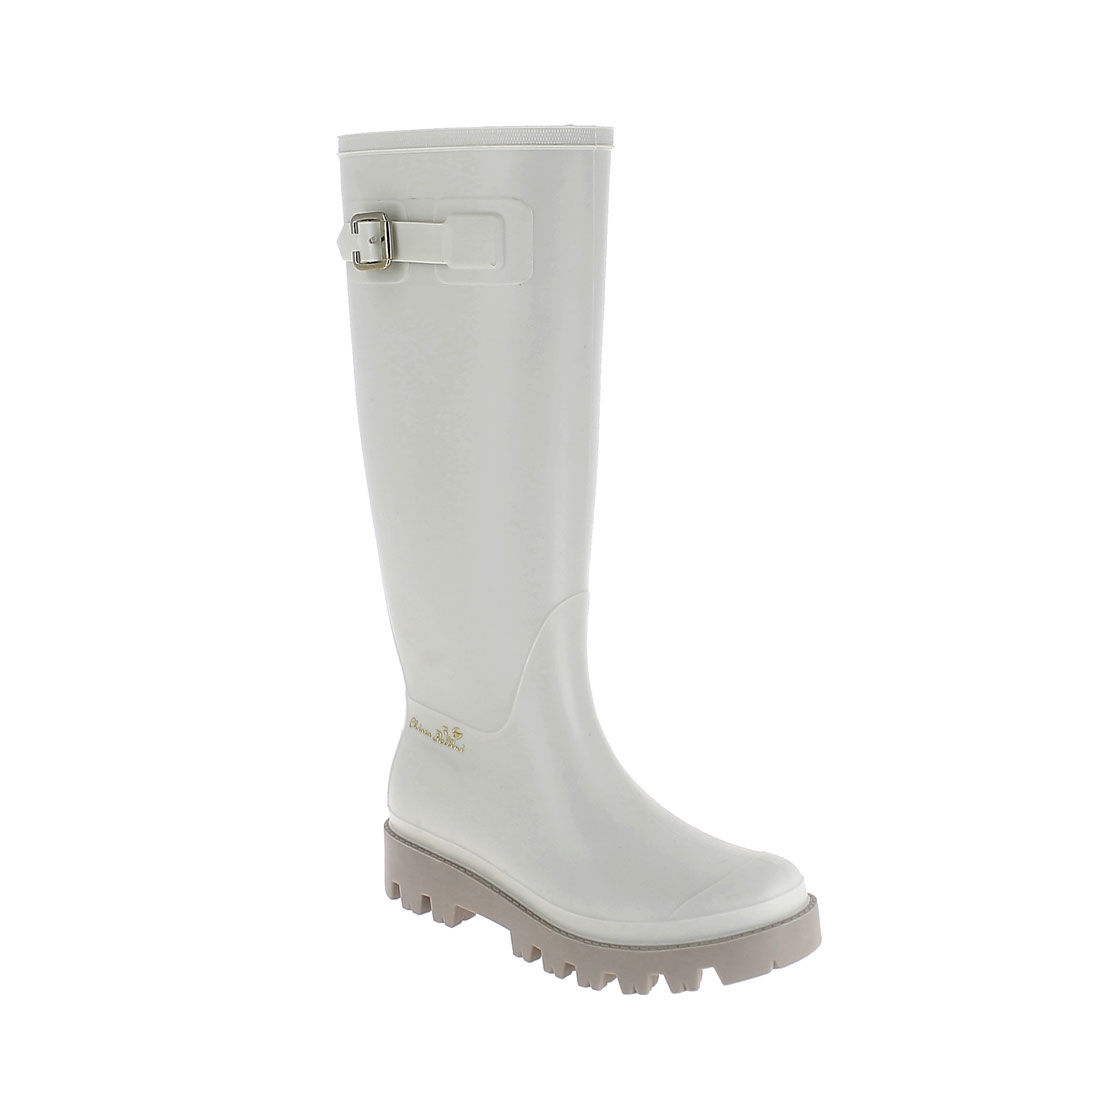 Wellington boot in trench pvc with metal buckle and 3D logo